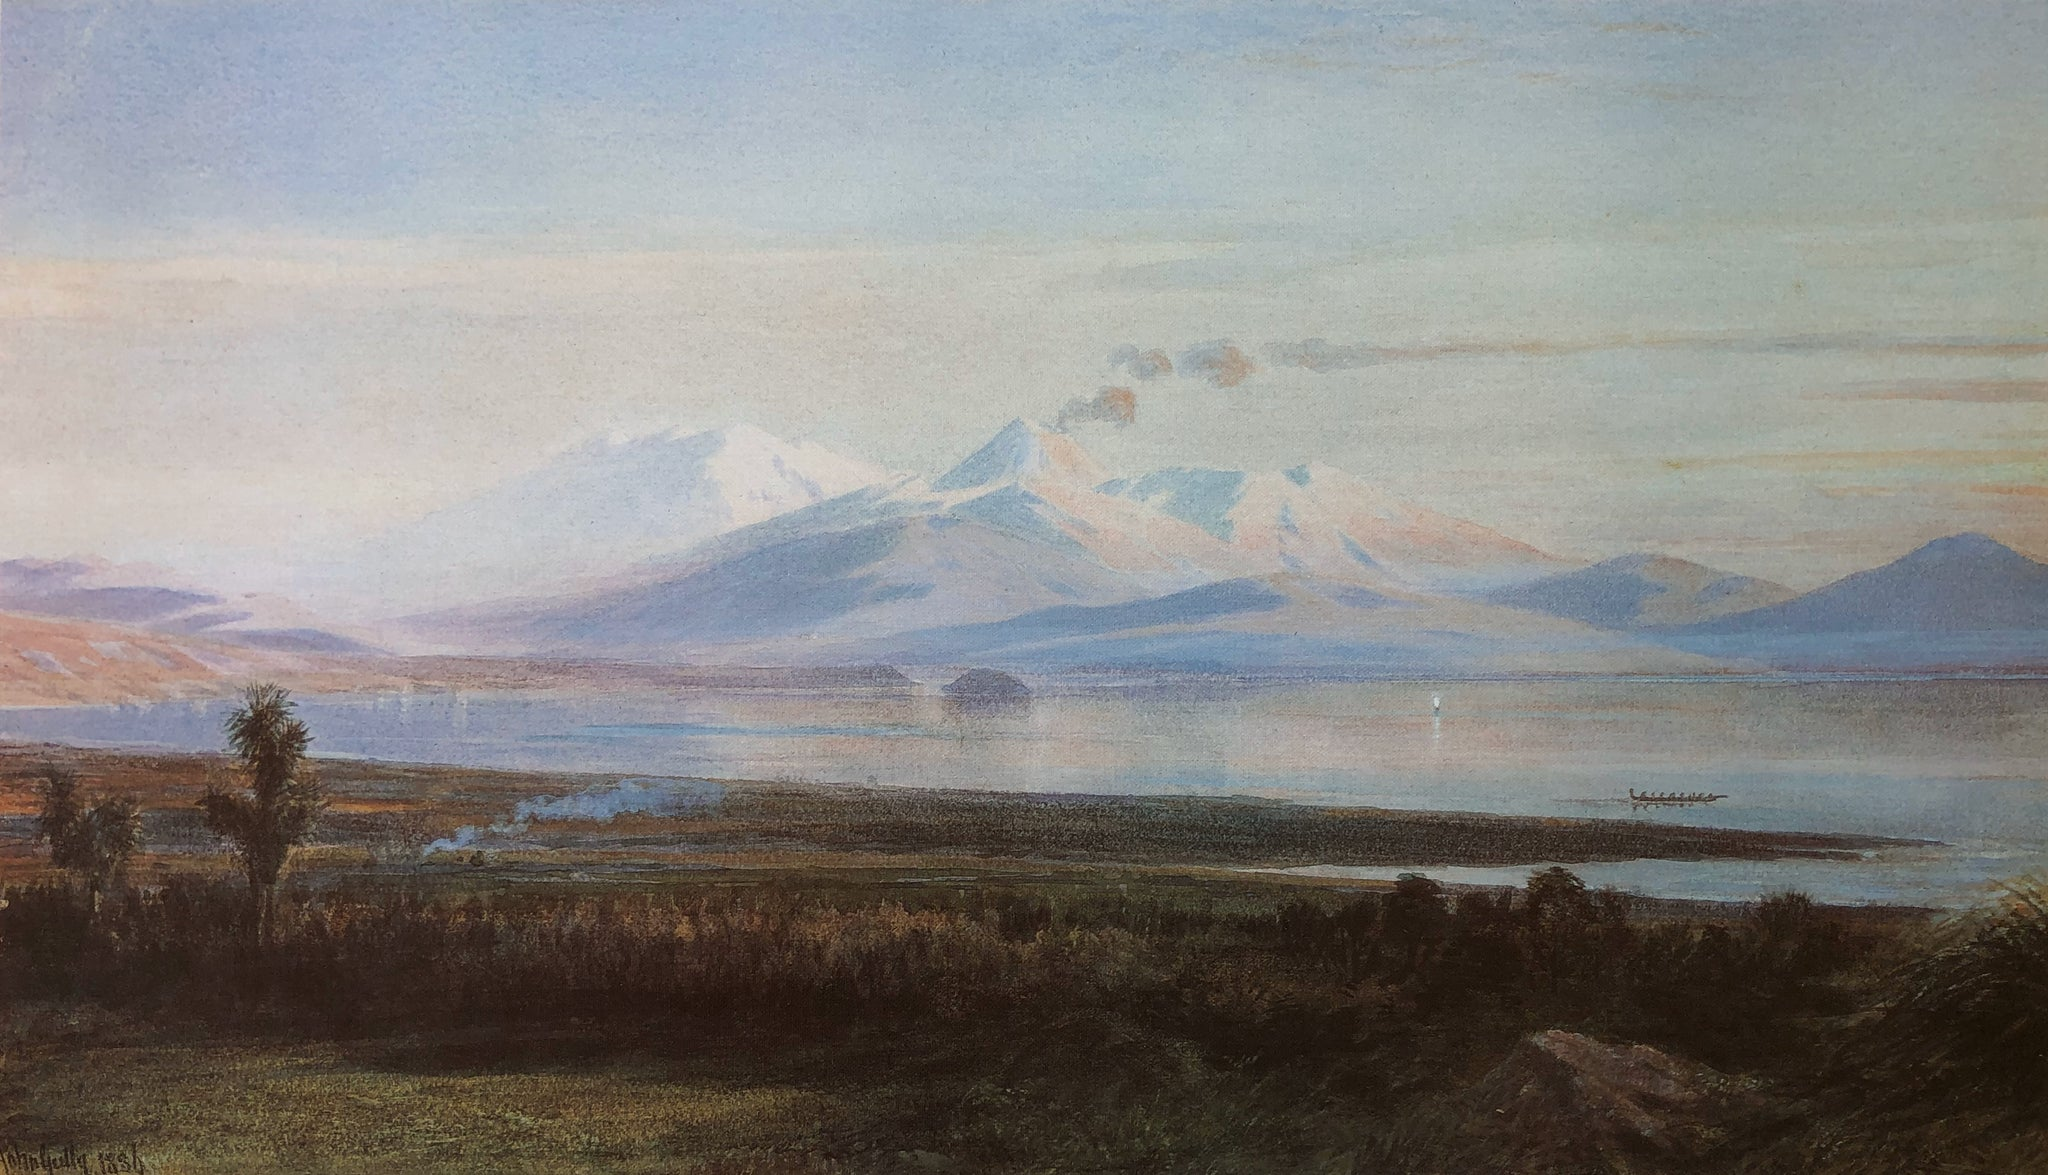 """Mt. Ruapehu from Lake Taupo"", 1886 - John Gully"